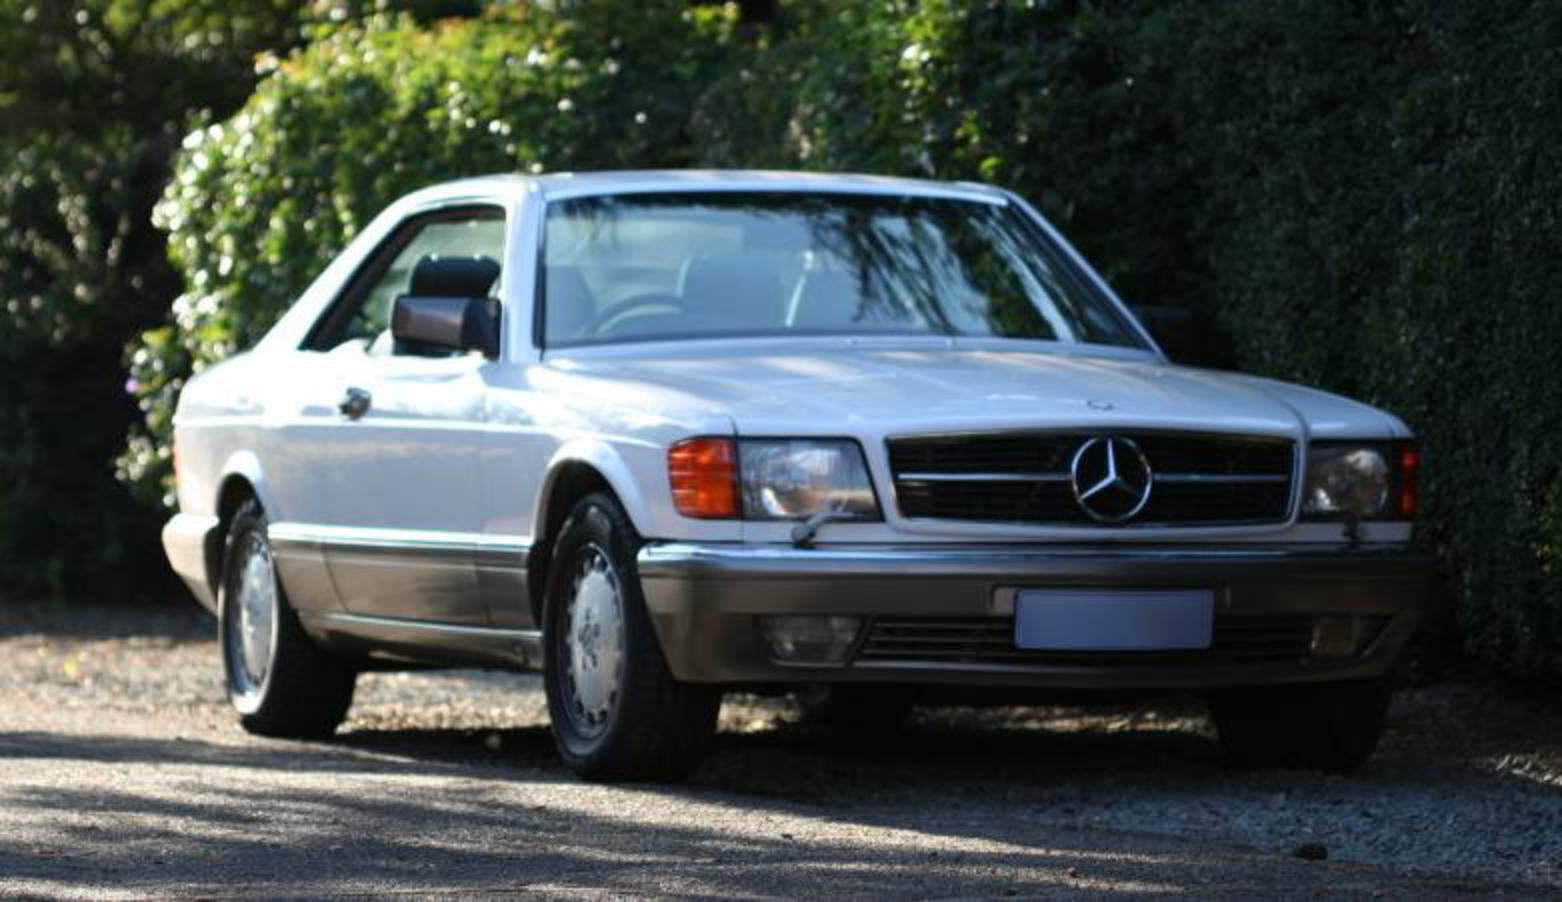 File:Mercedes Benz 560 SEC 1990.JPG. No higher resolution available.